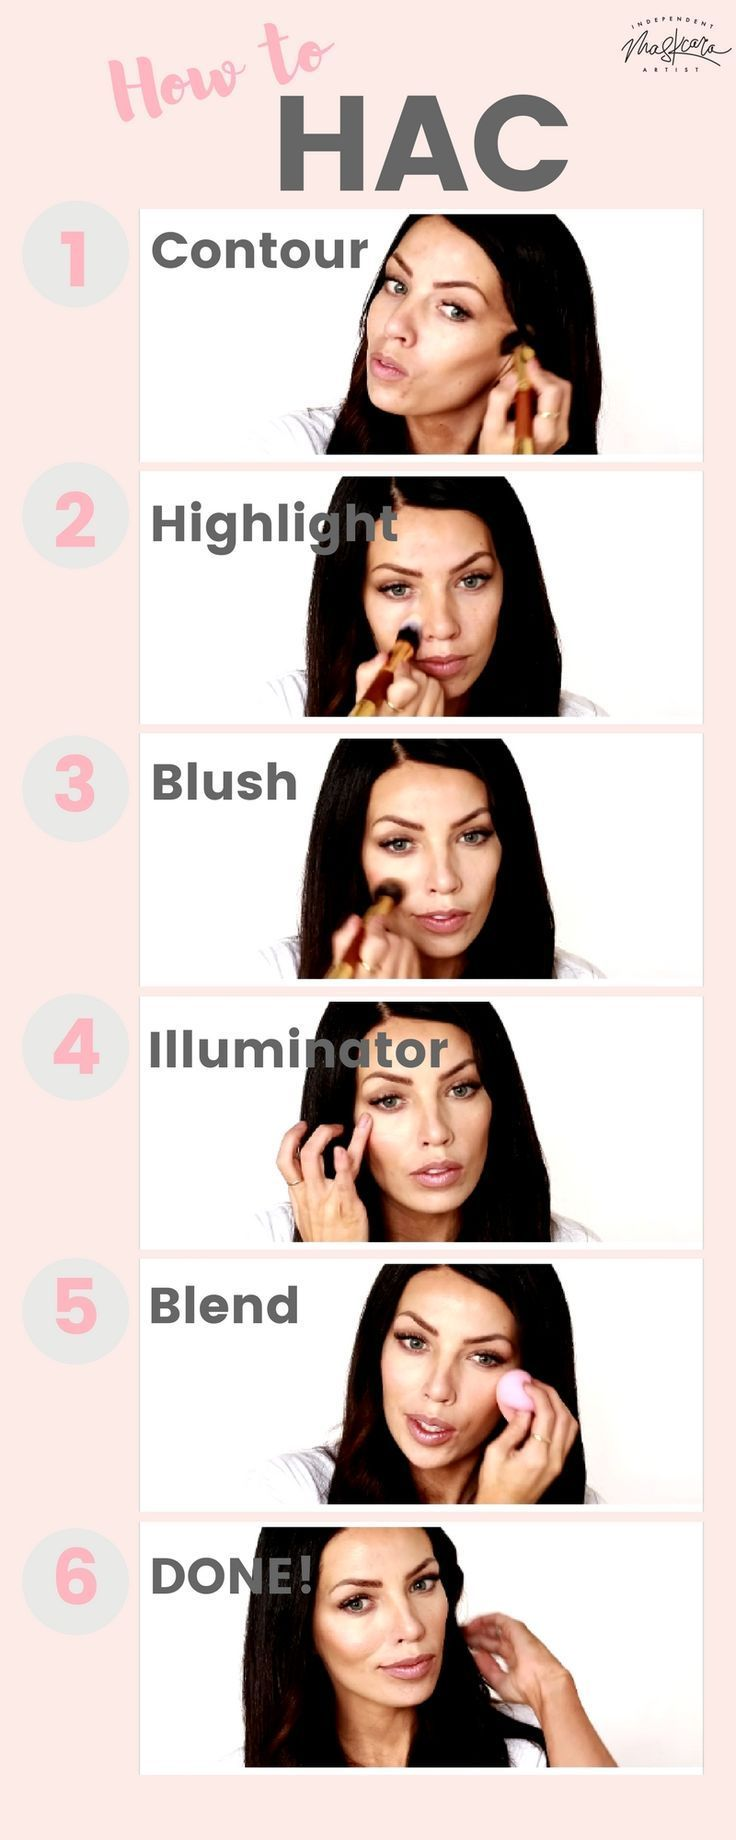 How to hac maskcara makeup tutorial how to hightlight and contour how to hac maskcara makeup tutorial how to hightlight and contour beauty tips pinterest contours make up and makeup guide baditri Images